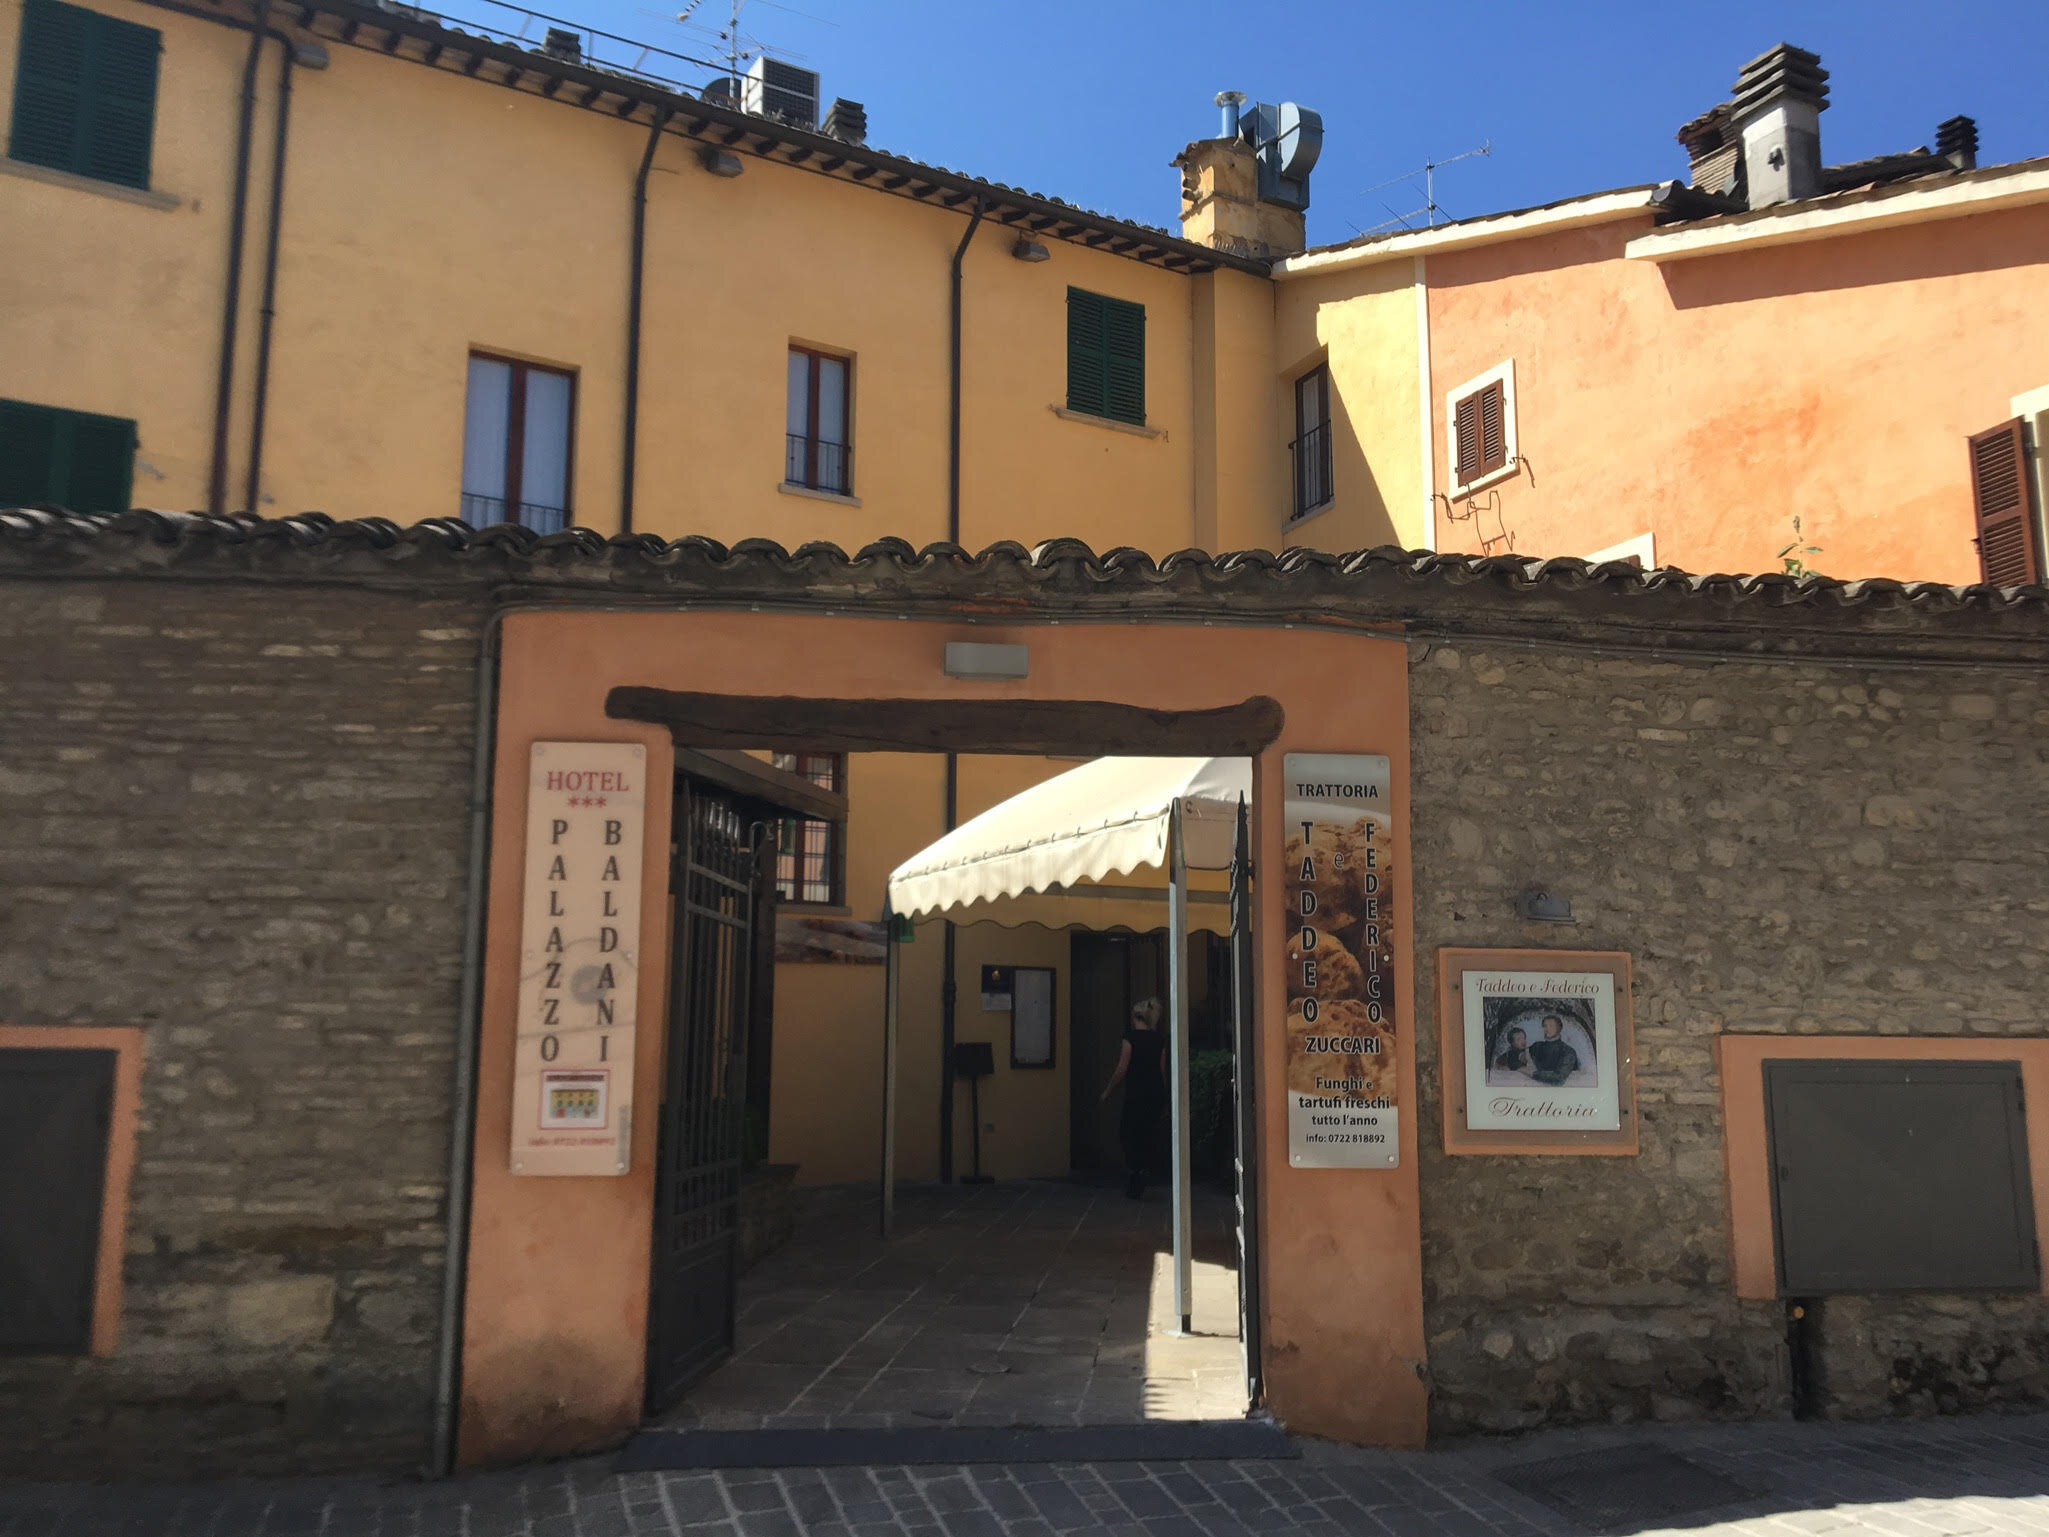 The front of the hotel as seen from the plaza in Sant'Angelo in Vado.